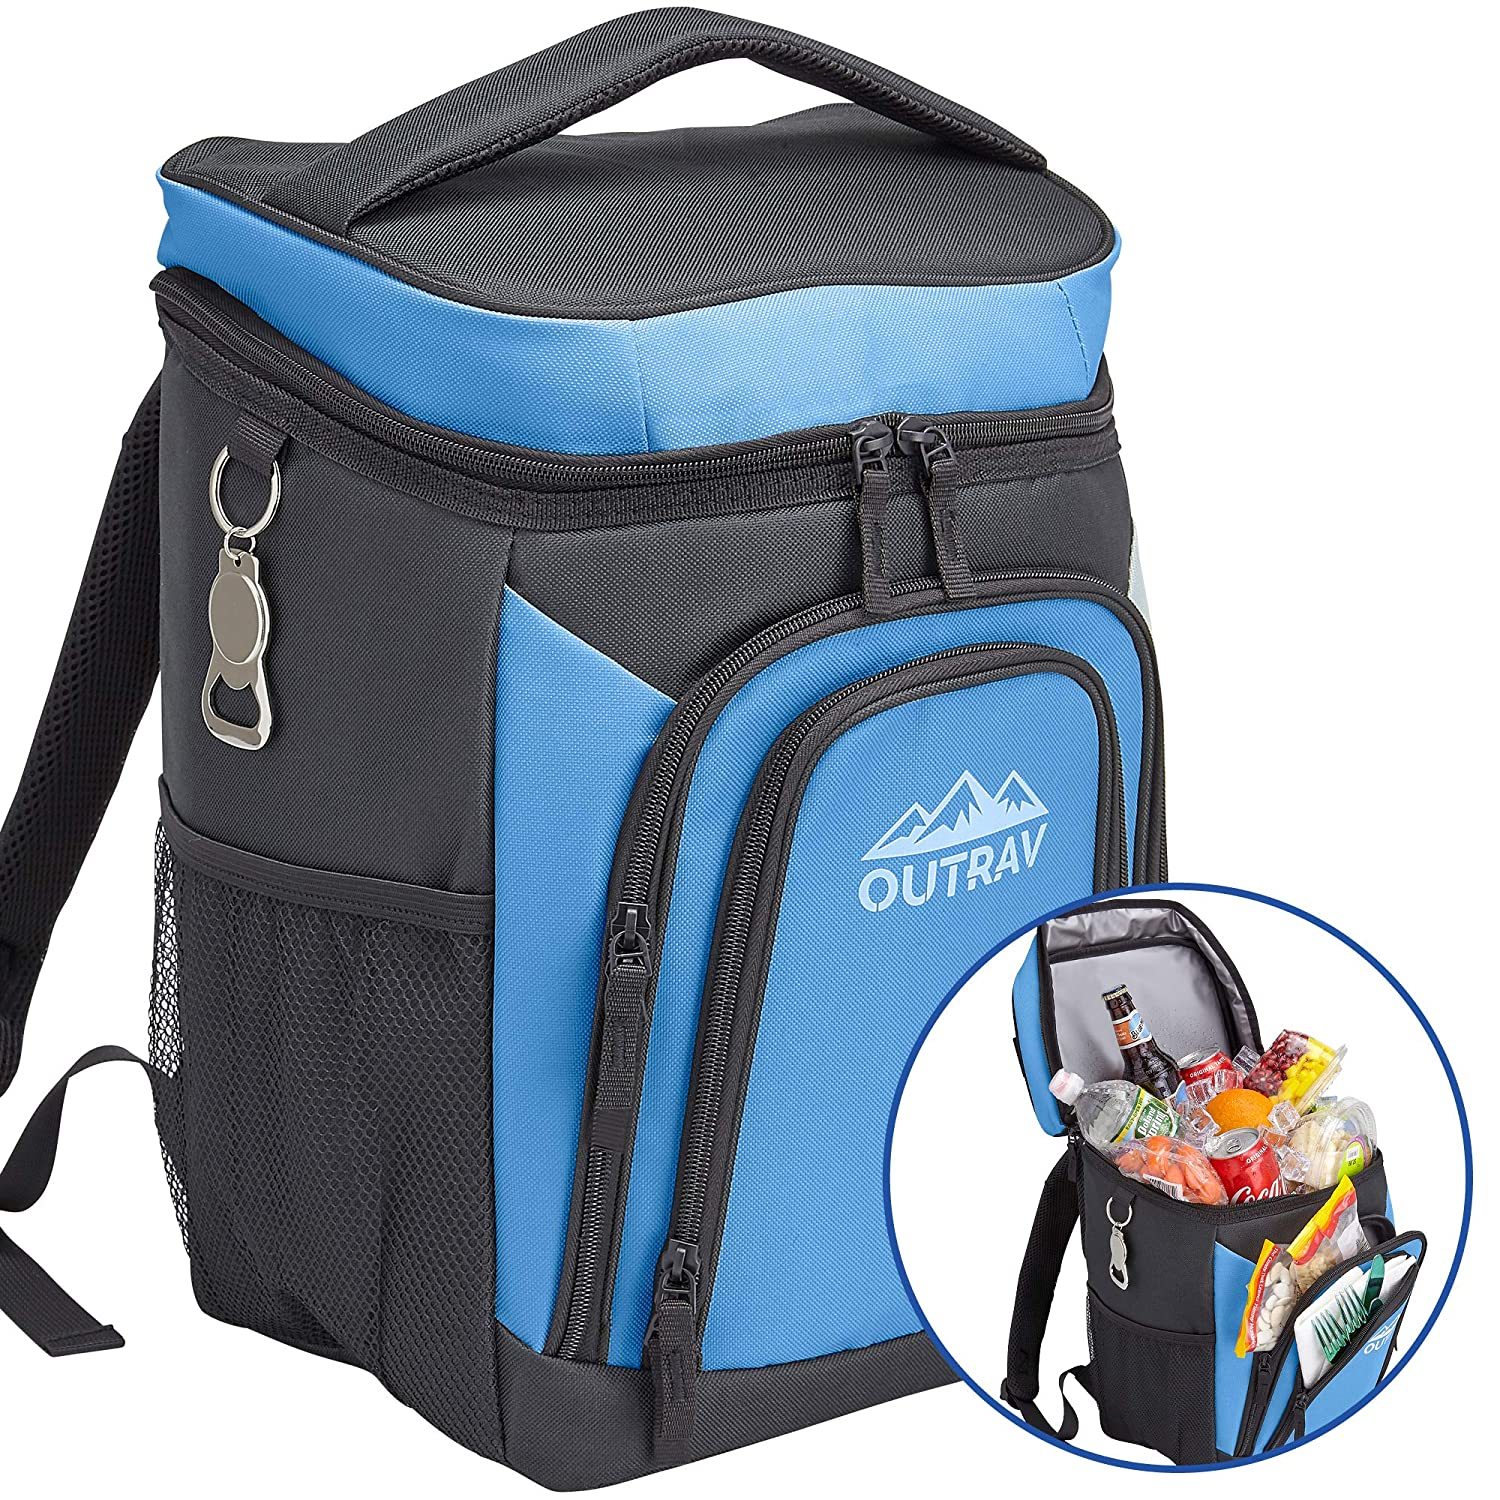 Outrav Blue Backpack Cooler Bag with Bottle Opener – Fully Insulated Thermal 16 Can Tote - Padded Back and Shoulder Strap - Front Zipper and Mesh Water Bottle Pockets